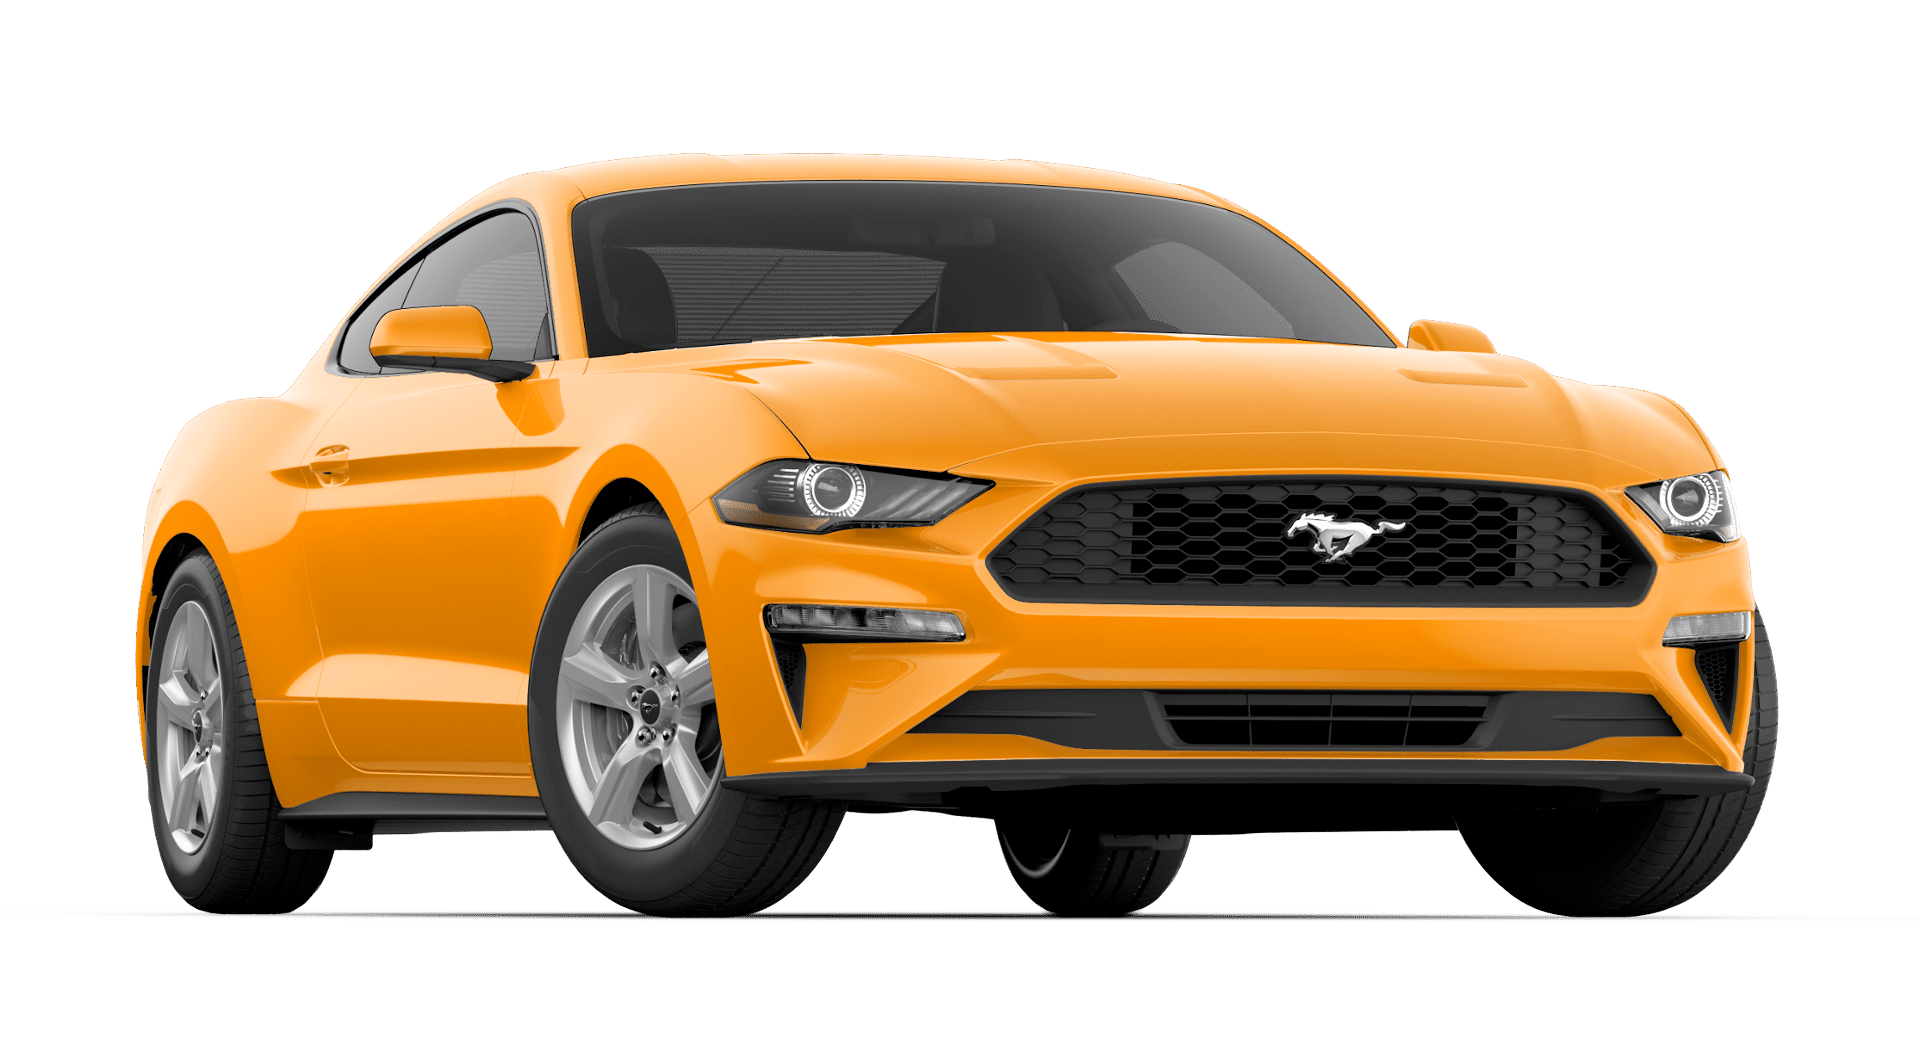 2018 Ford Mustang EcoBoost - Shown